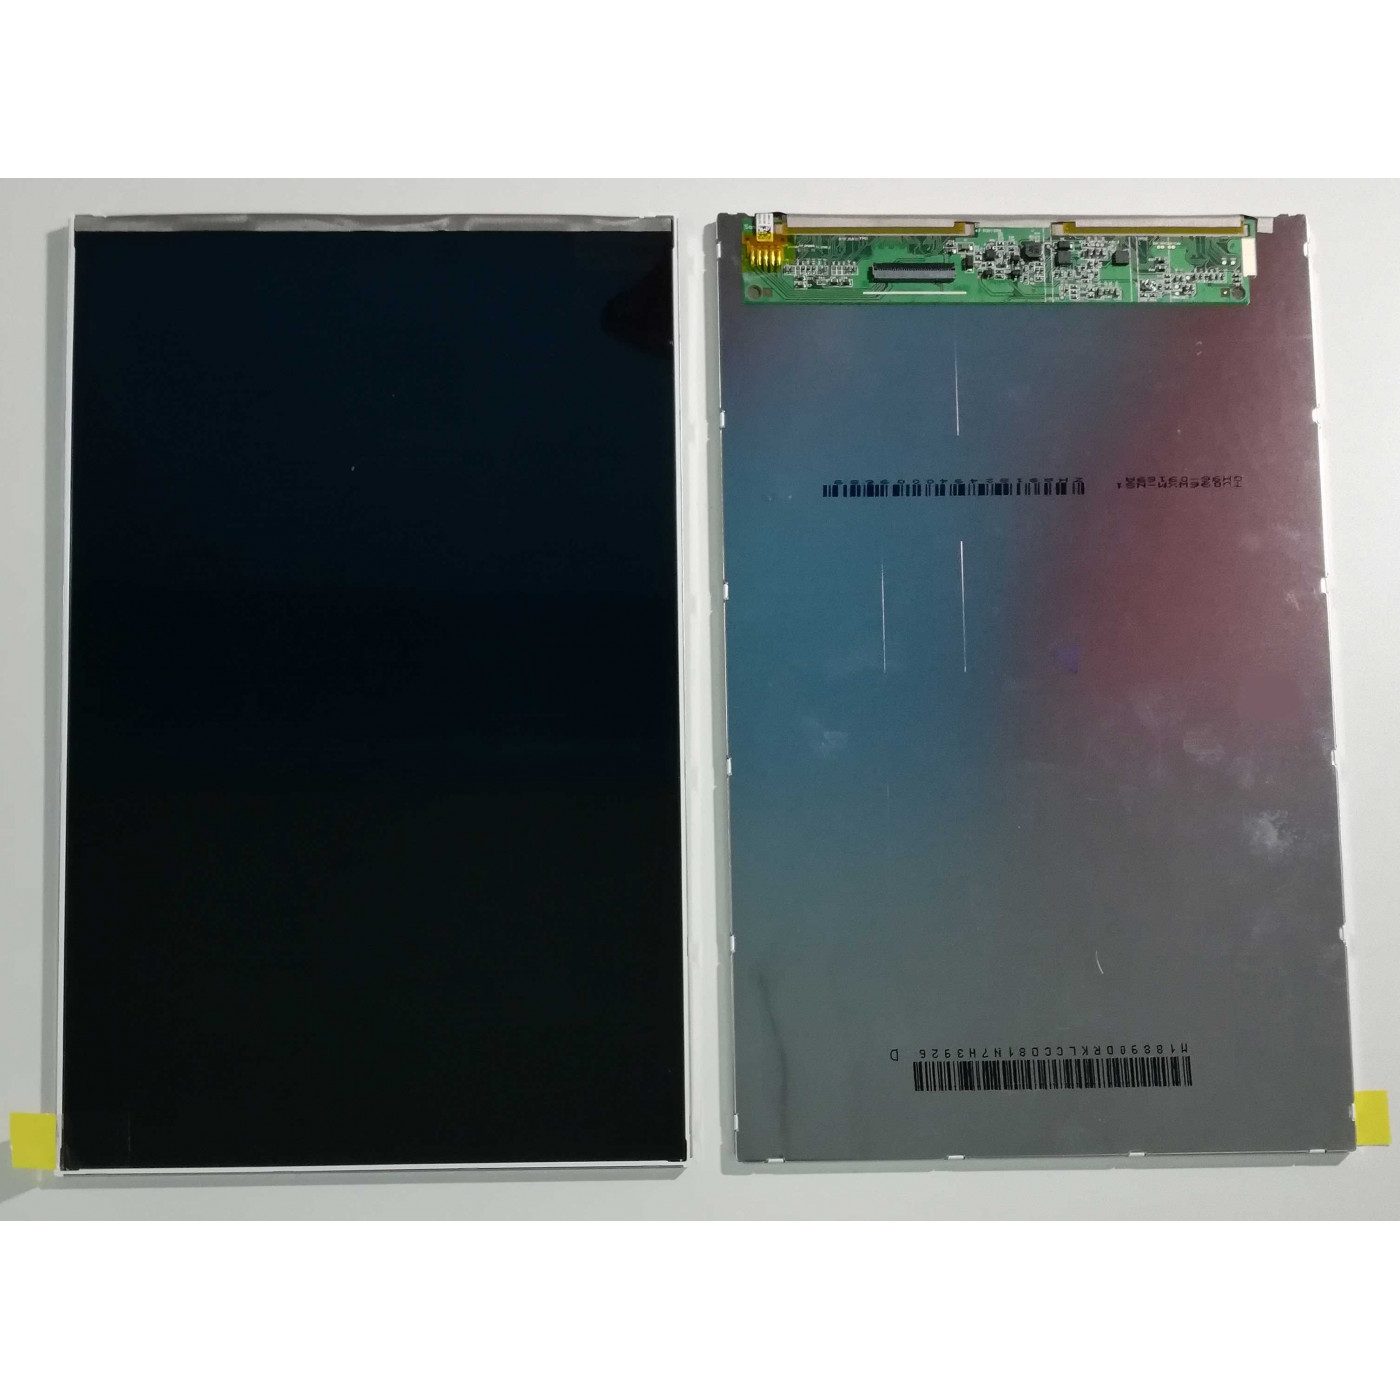 LCD Display for Samsung Galaxy Tab and SM T560 T561 Monitor 9.6